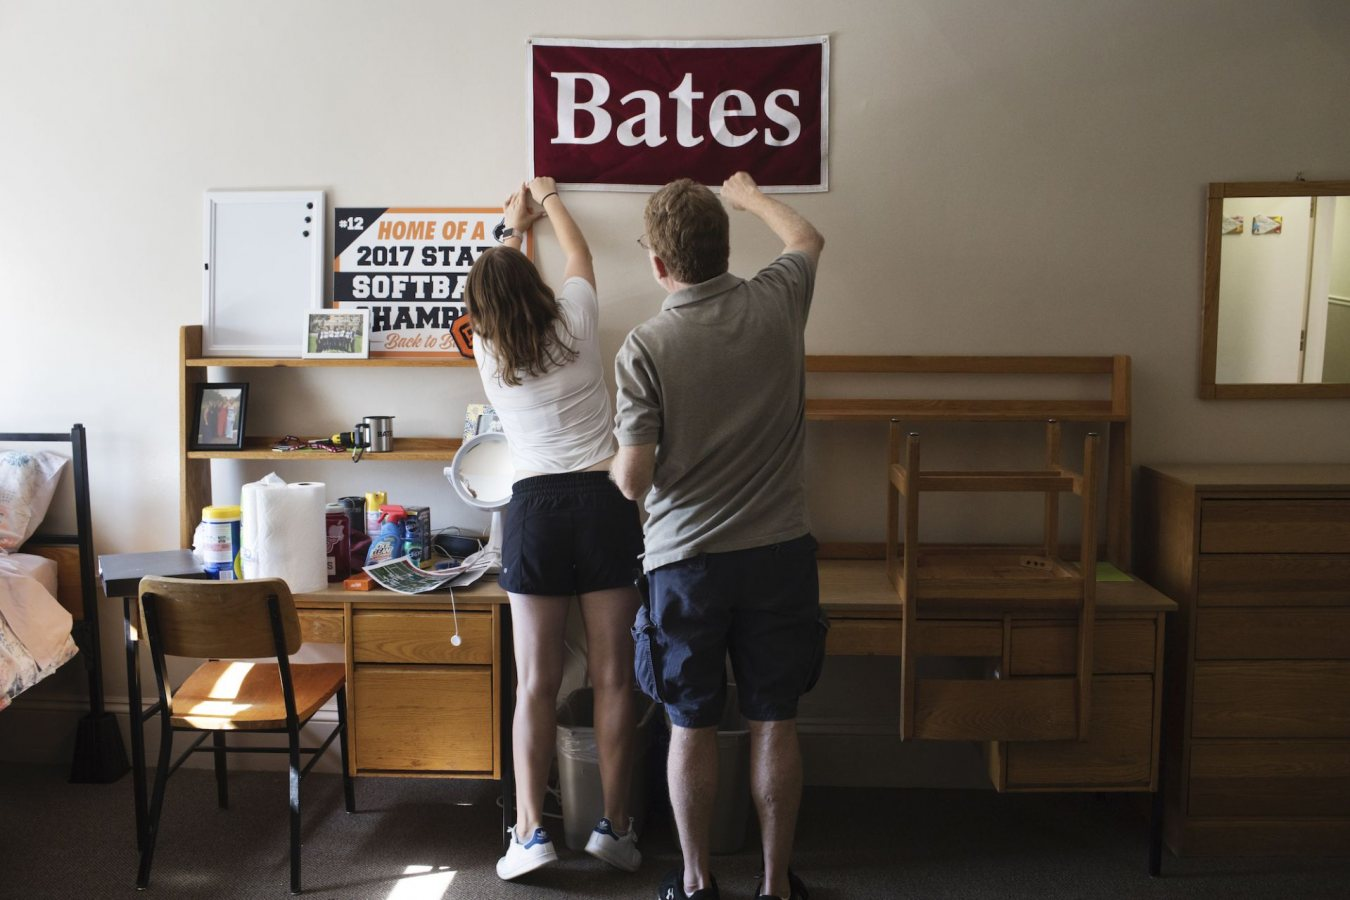 Abra Kaplan '21 of Oak Park, Ill., stretches to pin a Bates College banner on her wall with the assistance of her father Gary Kaplan while moving in to her new dorm at Rand Hall during move in day.